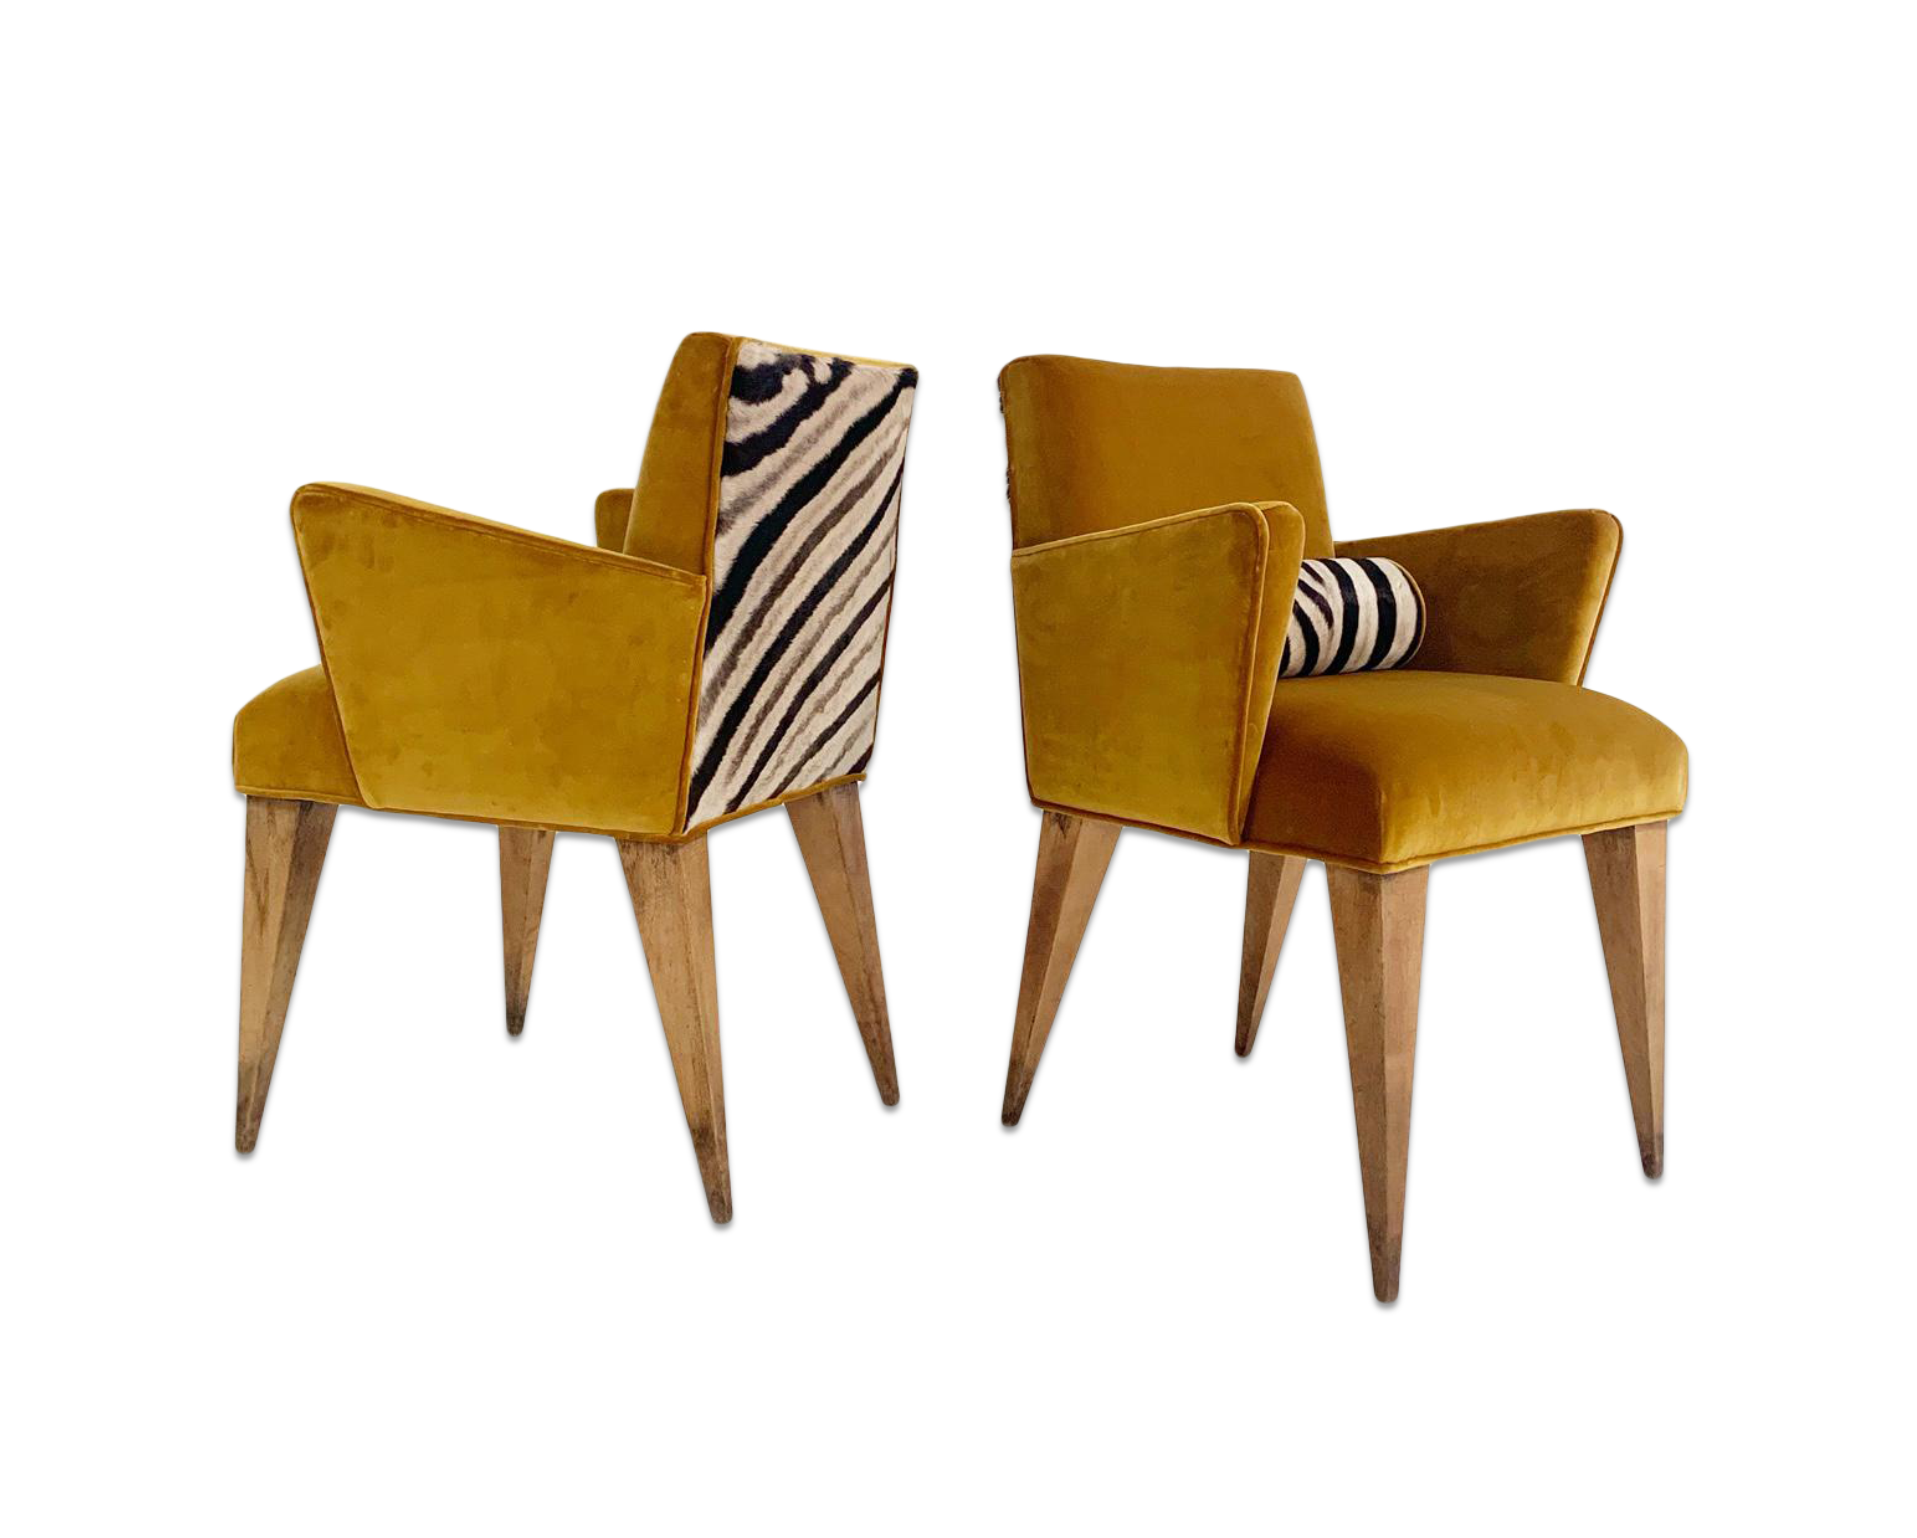 Mexican Modernist Chairs in Loro Piana Velvet and Zebra Hide, pair